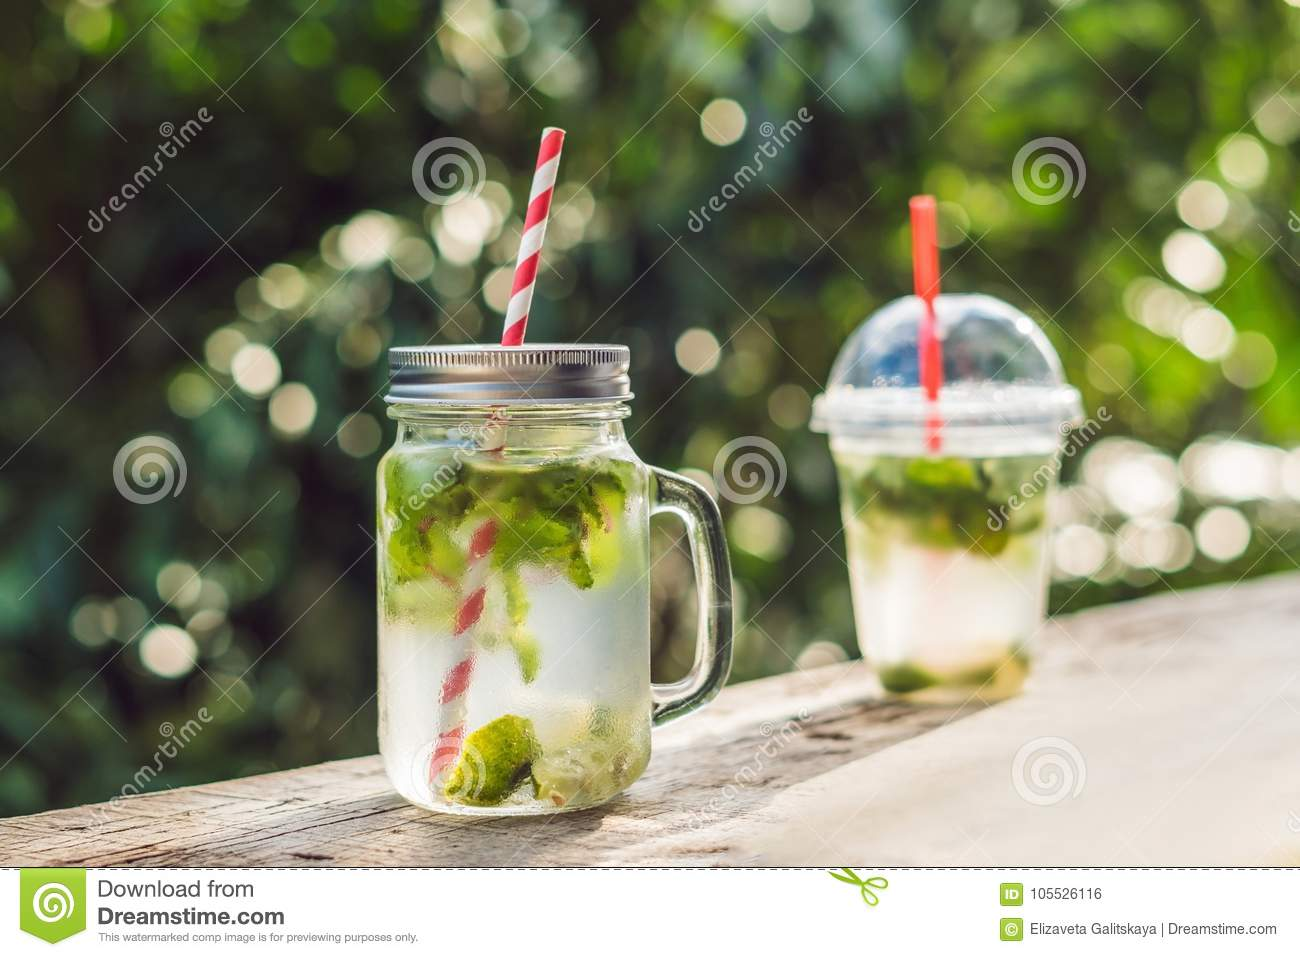 Zero Waste Concept Use A Plastic Glass Or Mason Jar Zero Waste Green And Conscious Lifestyle Concept Reusable On The Go Drink Container Ideas